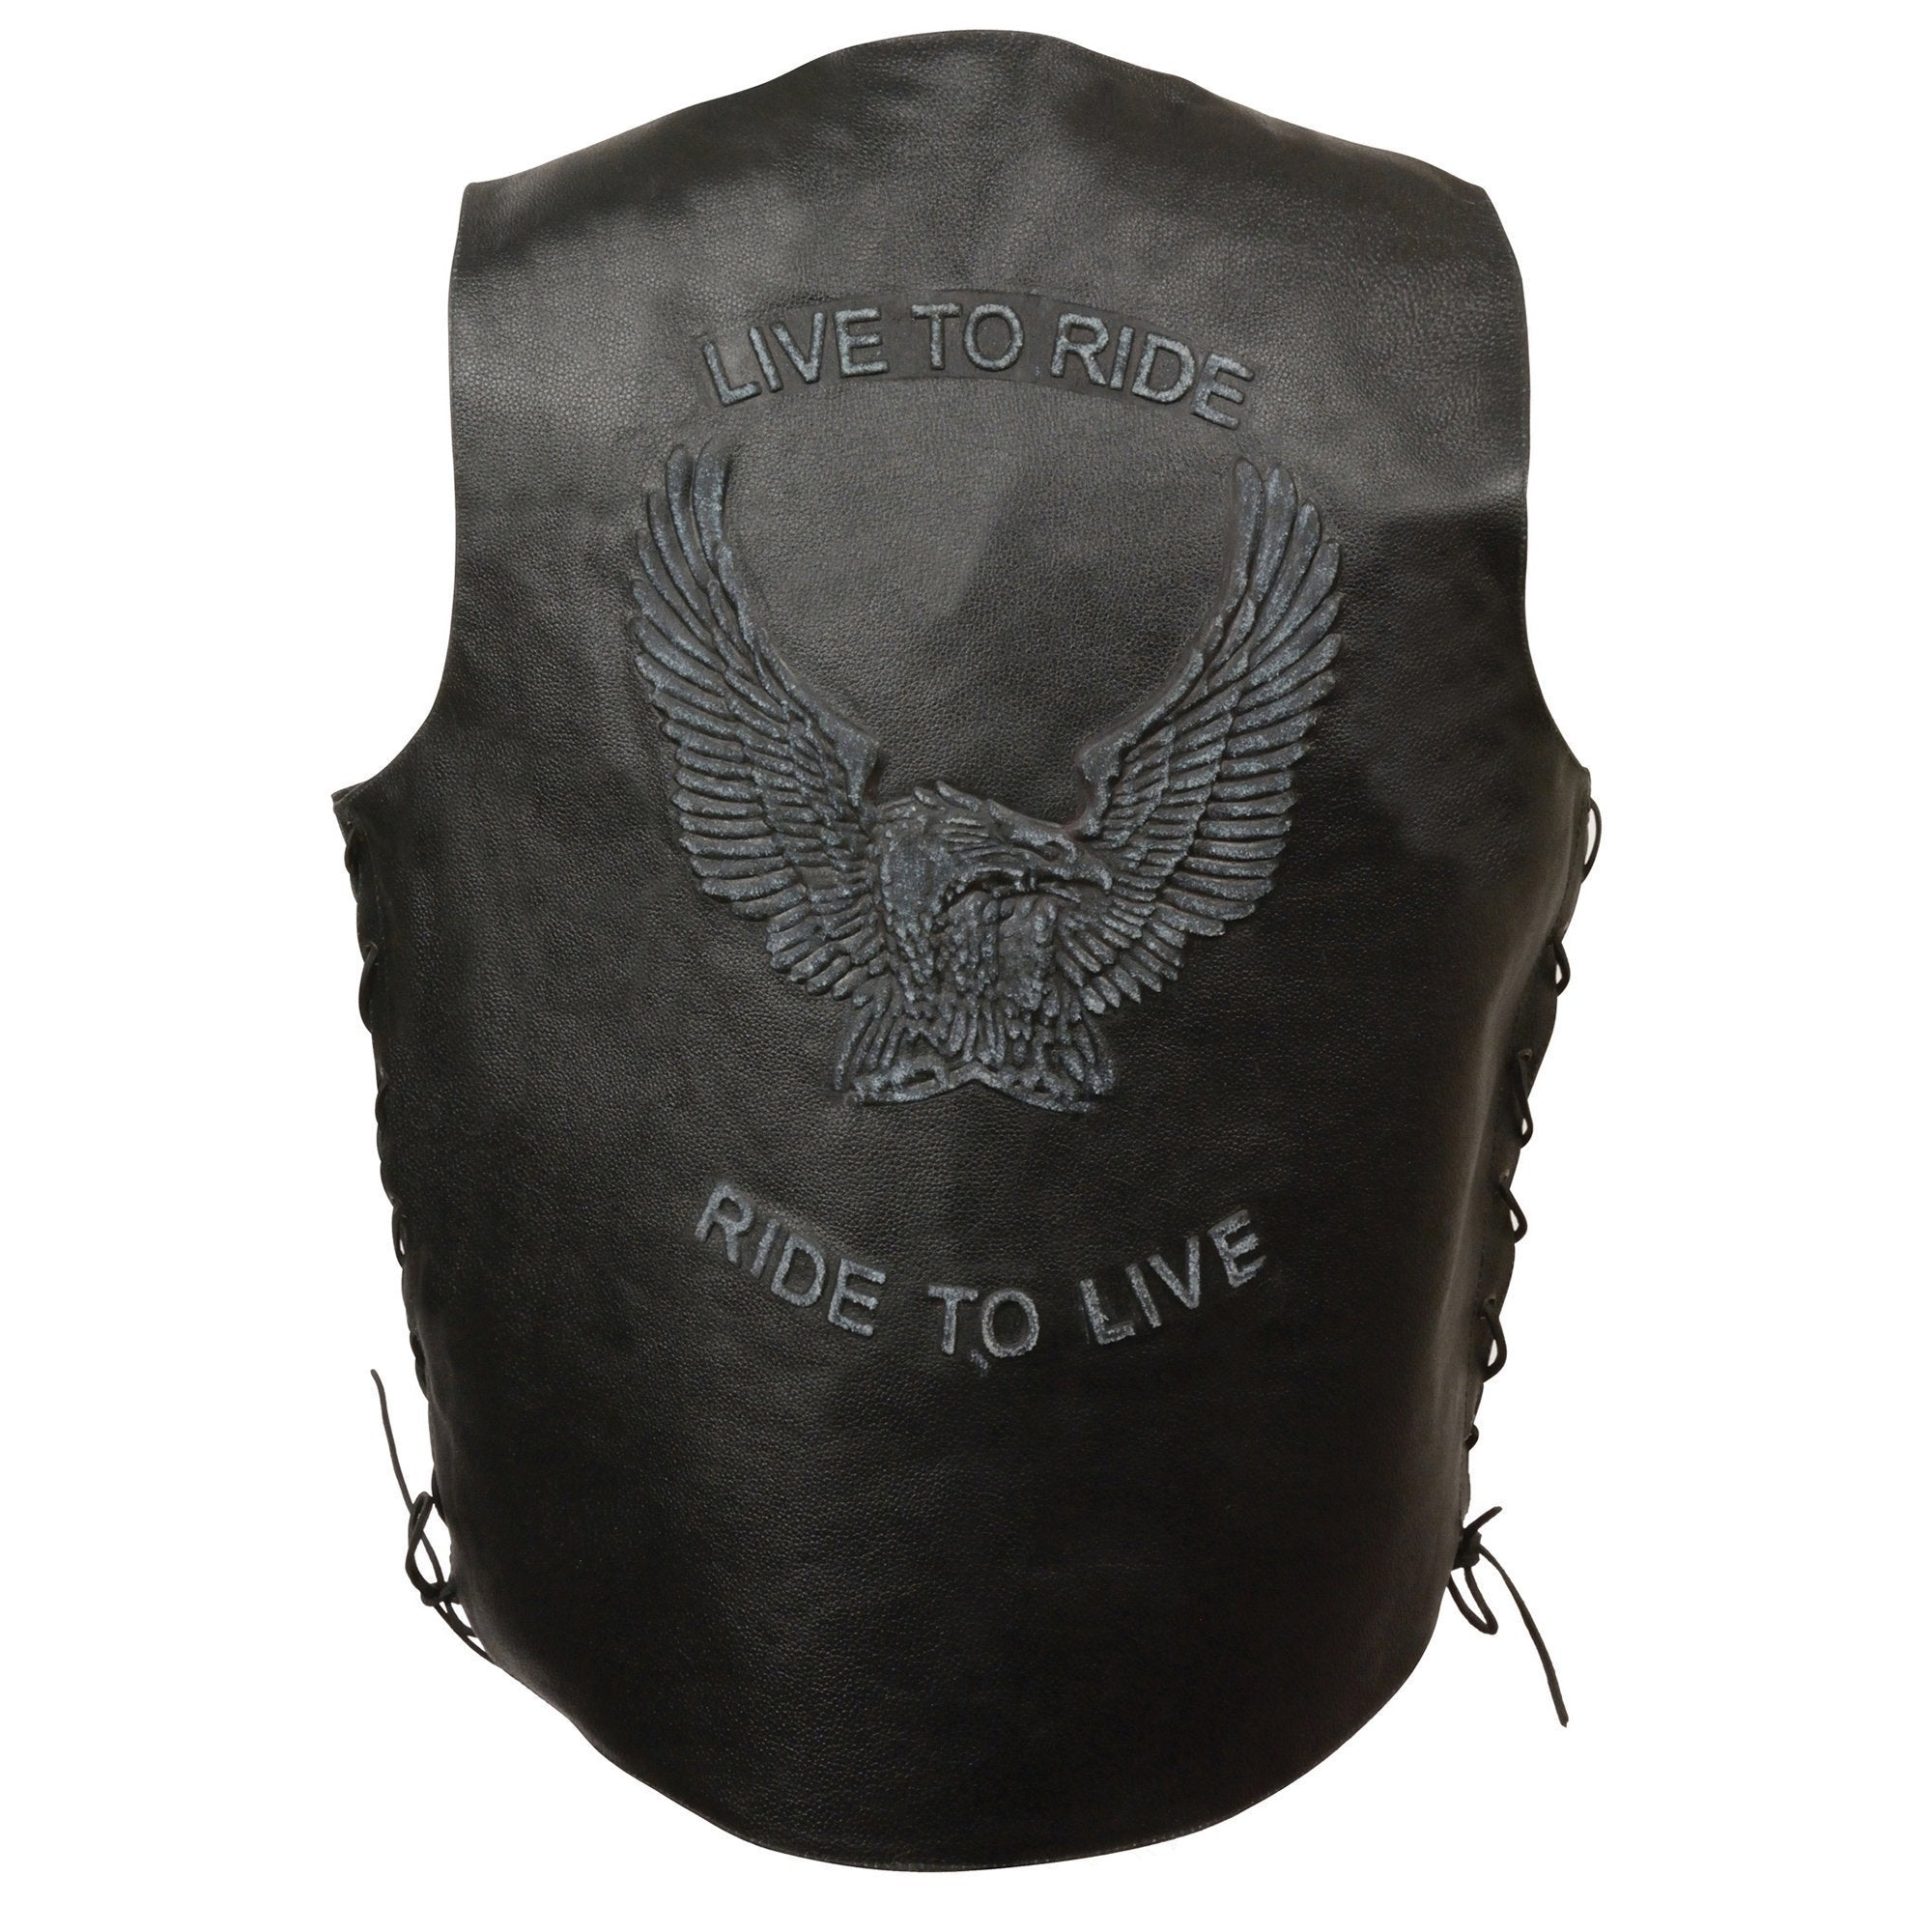 Event Leather ELM3900 'Live to Ride' Men's Black Leather Vest with